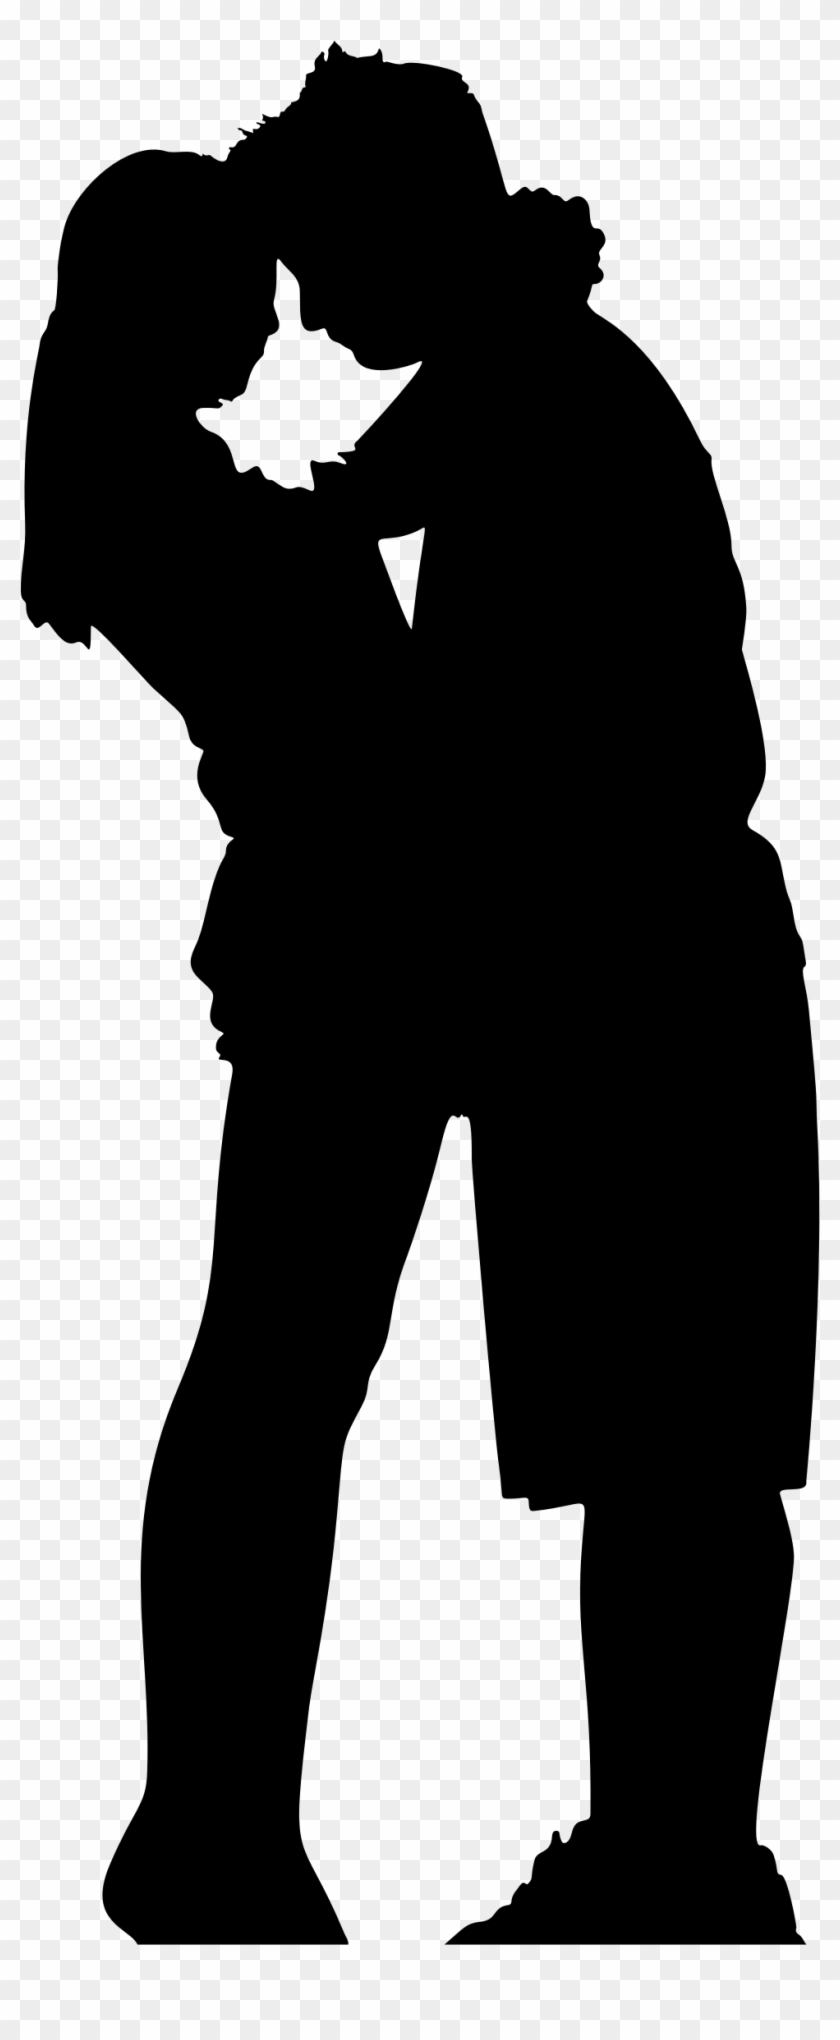 Hugs and kiss clipart black and white image download Hug Clipart Silhouette - Couple Hugging Silhouette Png ... image download